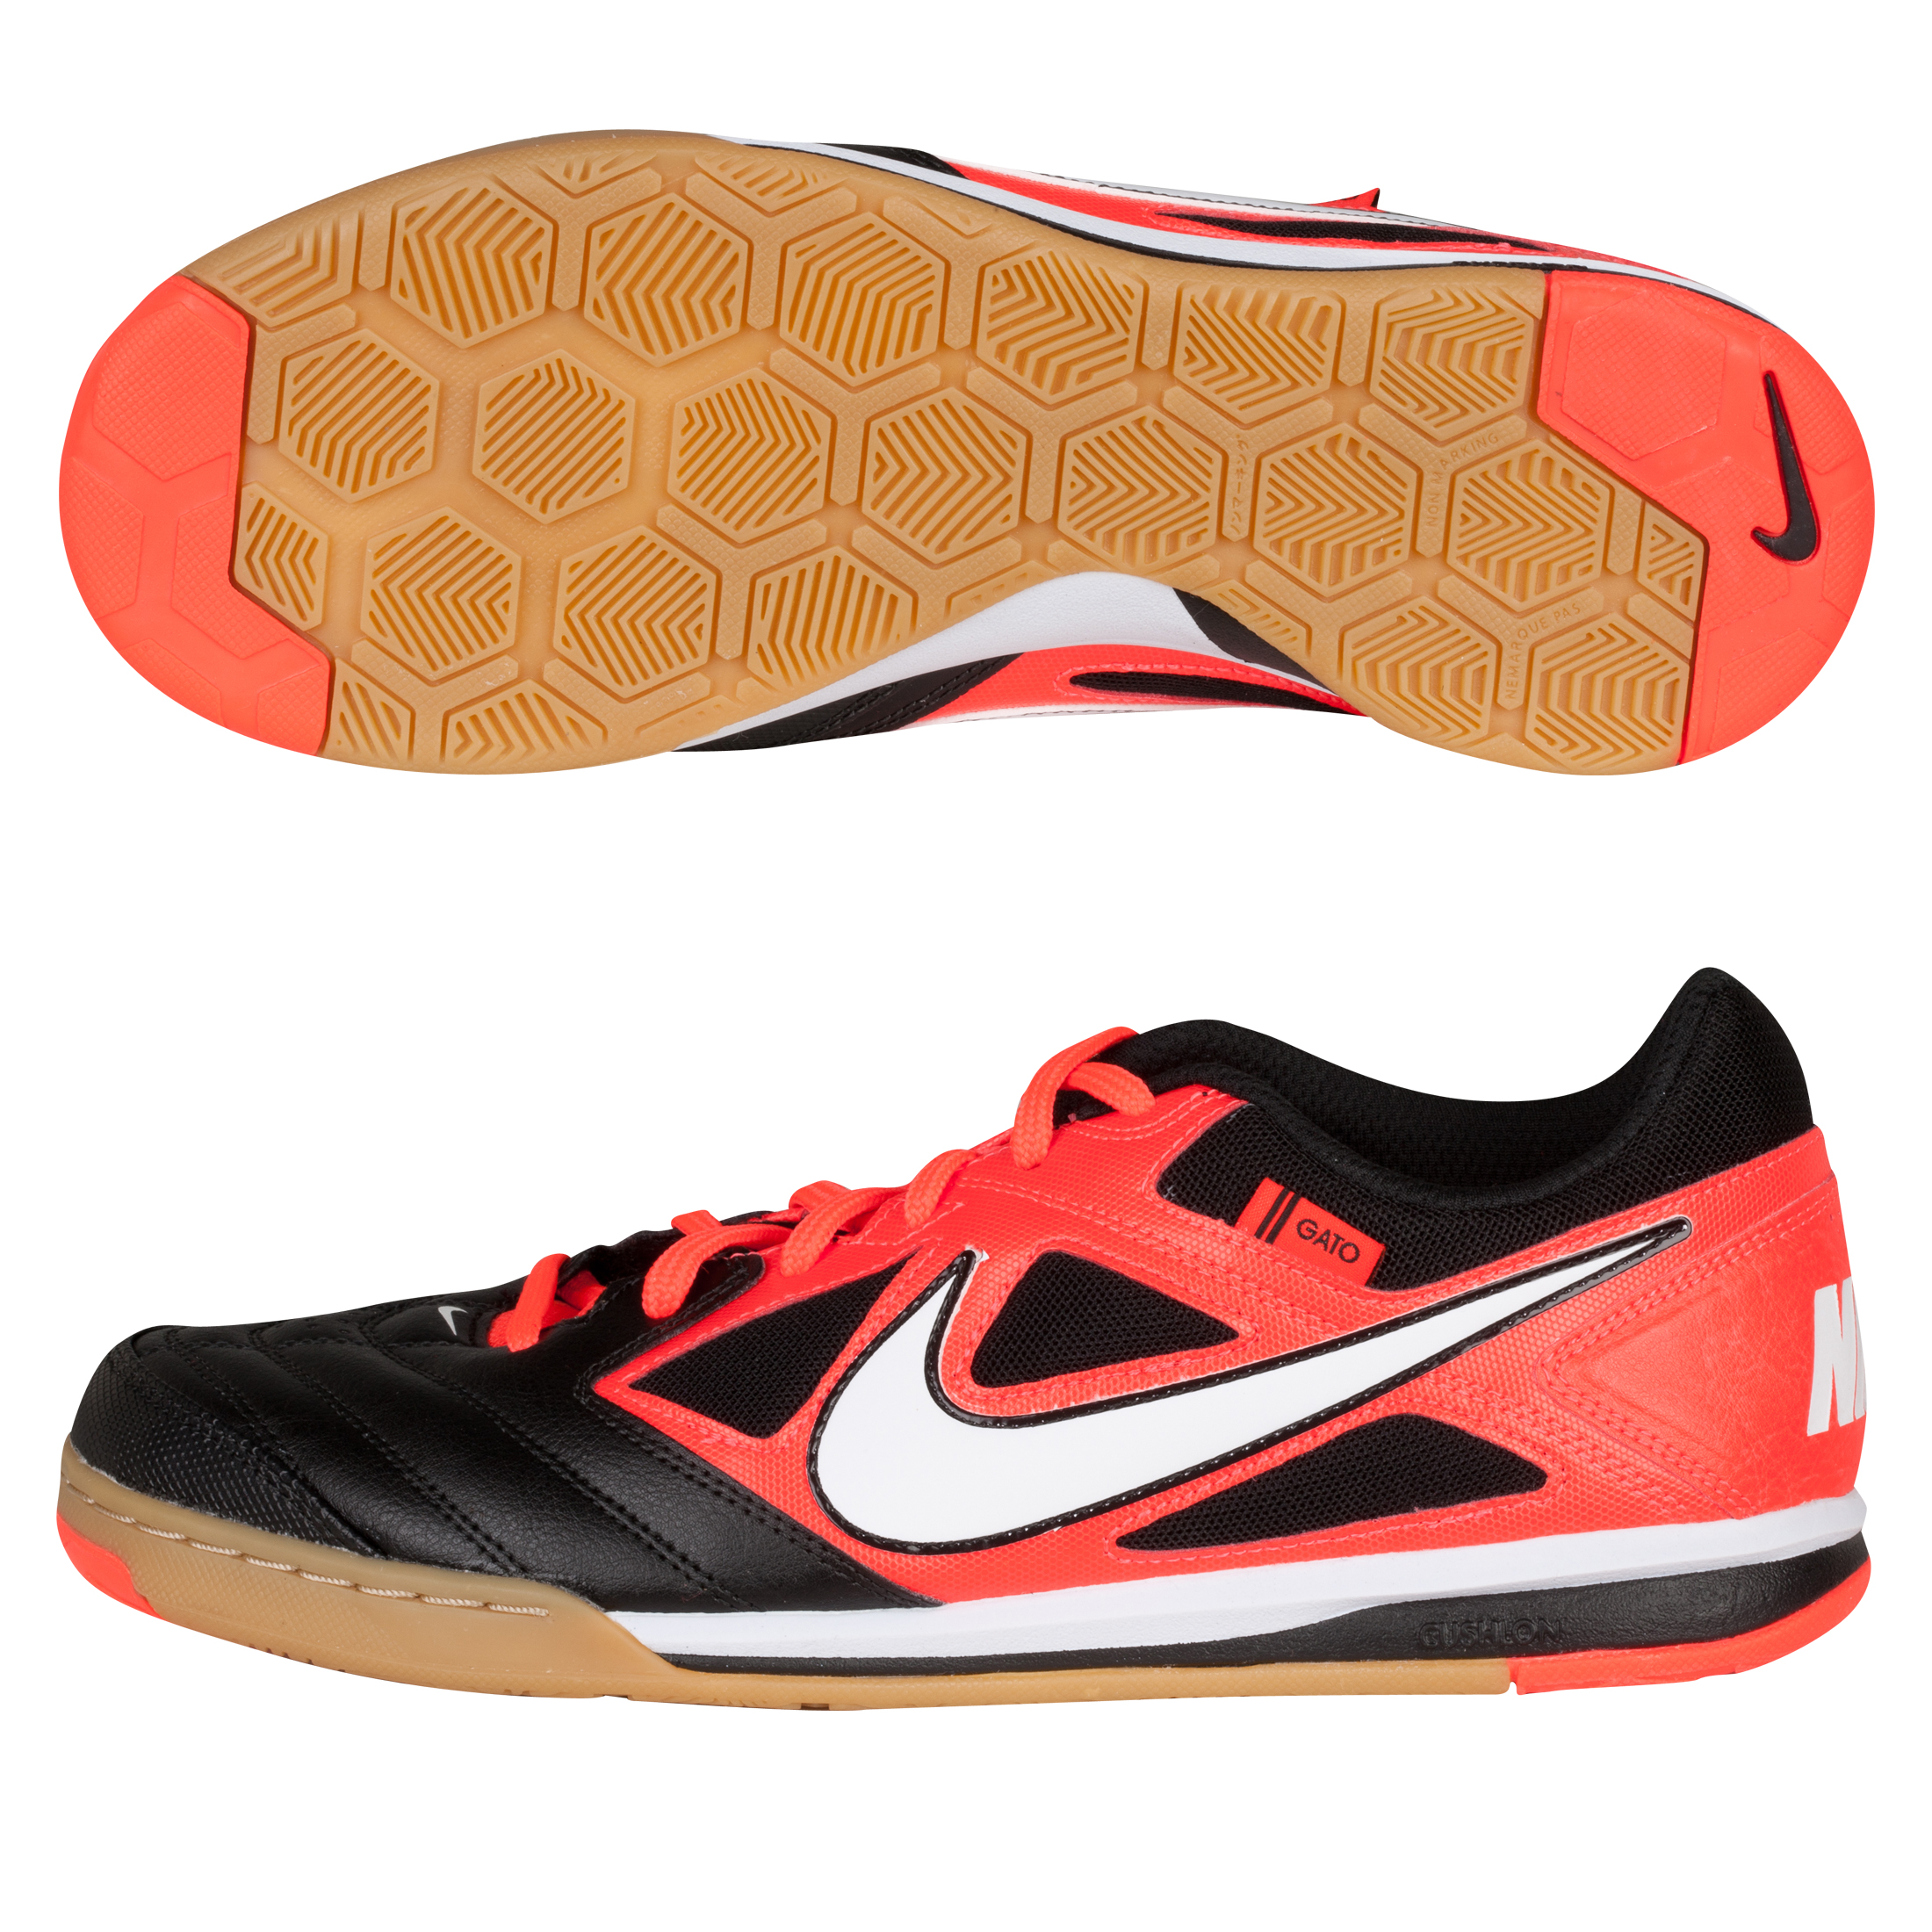 Nike Nike5 Gato Trainers - Black/White/Bright Crimson/GM Light